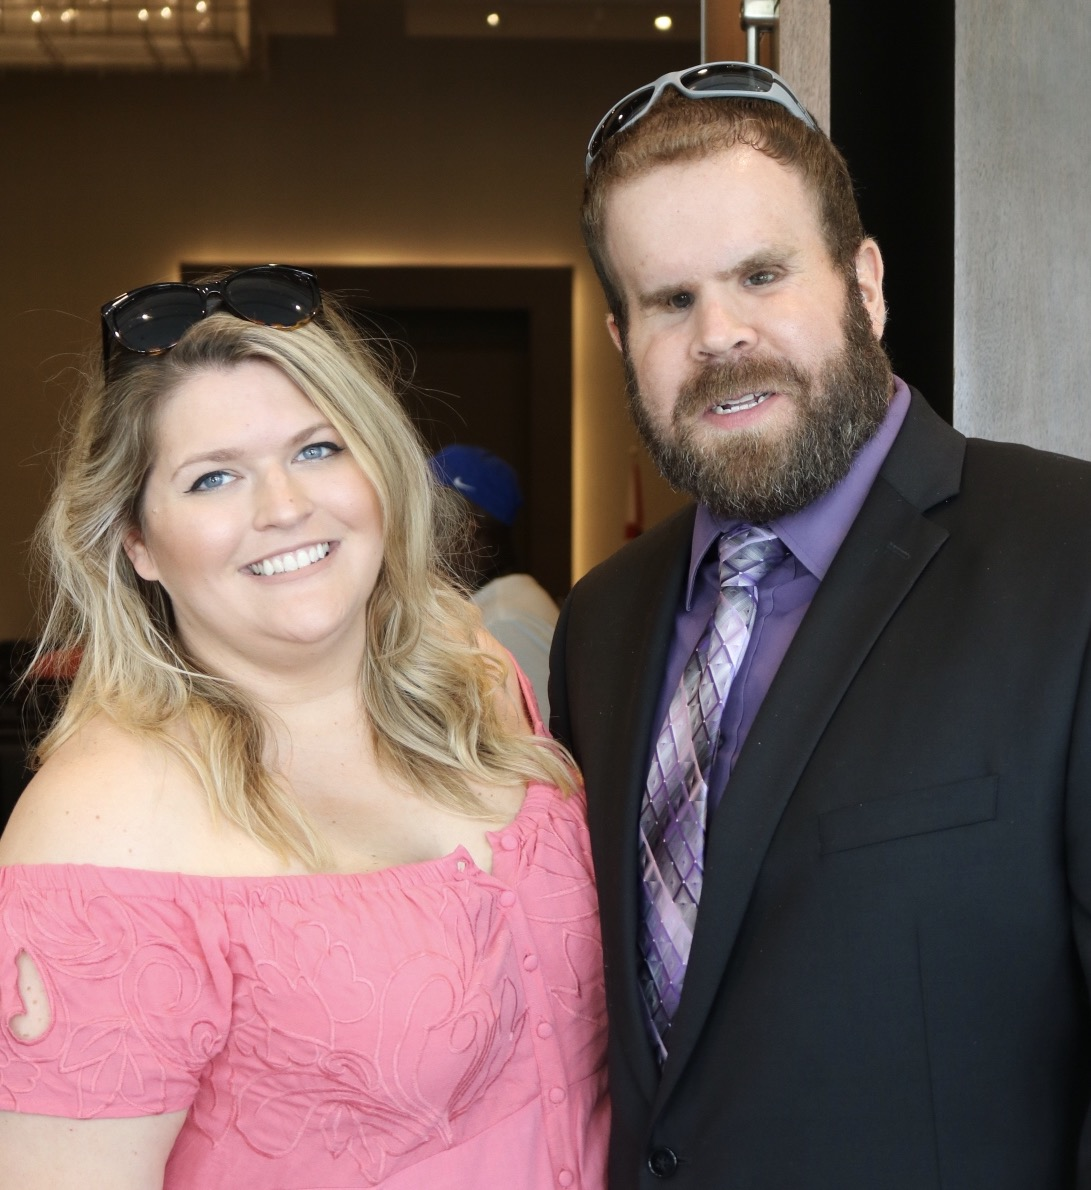 NBBA President, Blake Boudreaux, and Kelly Leng smile for the camera.